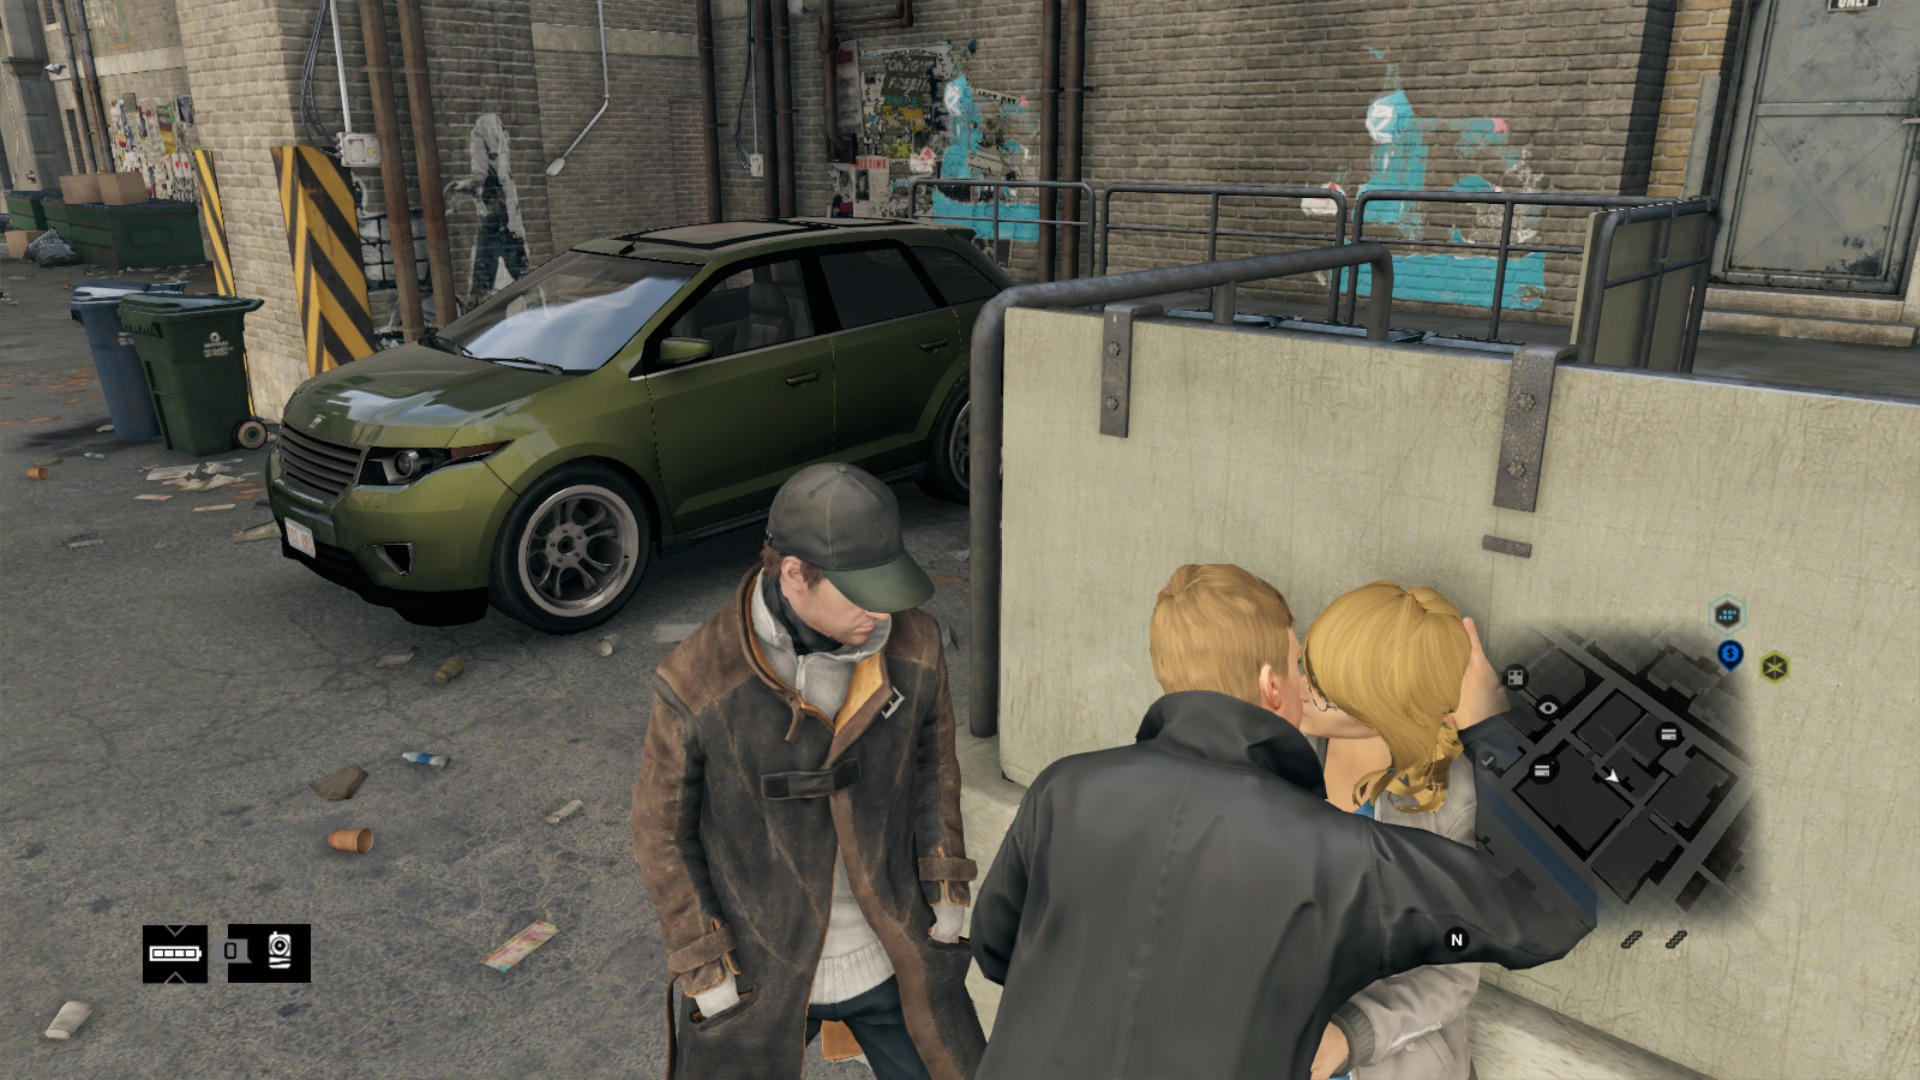 WATCH_DOGS™_20140528112659